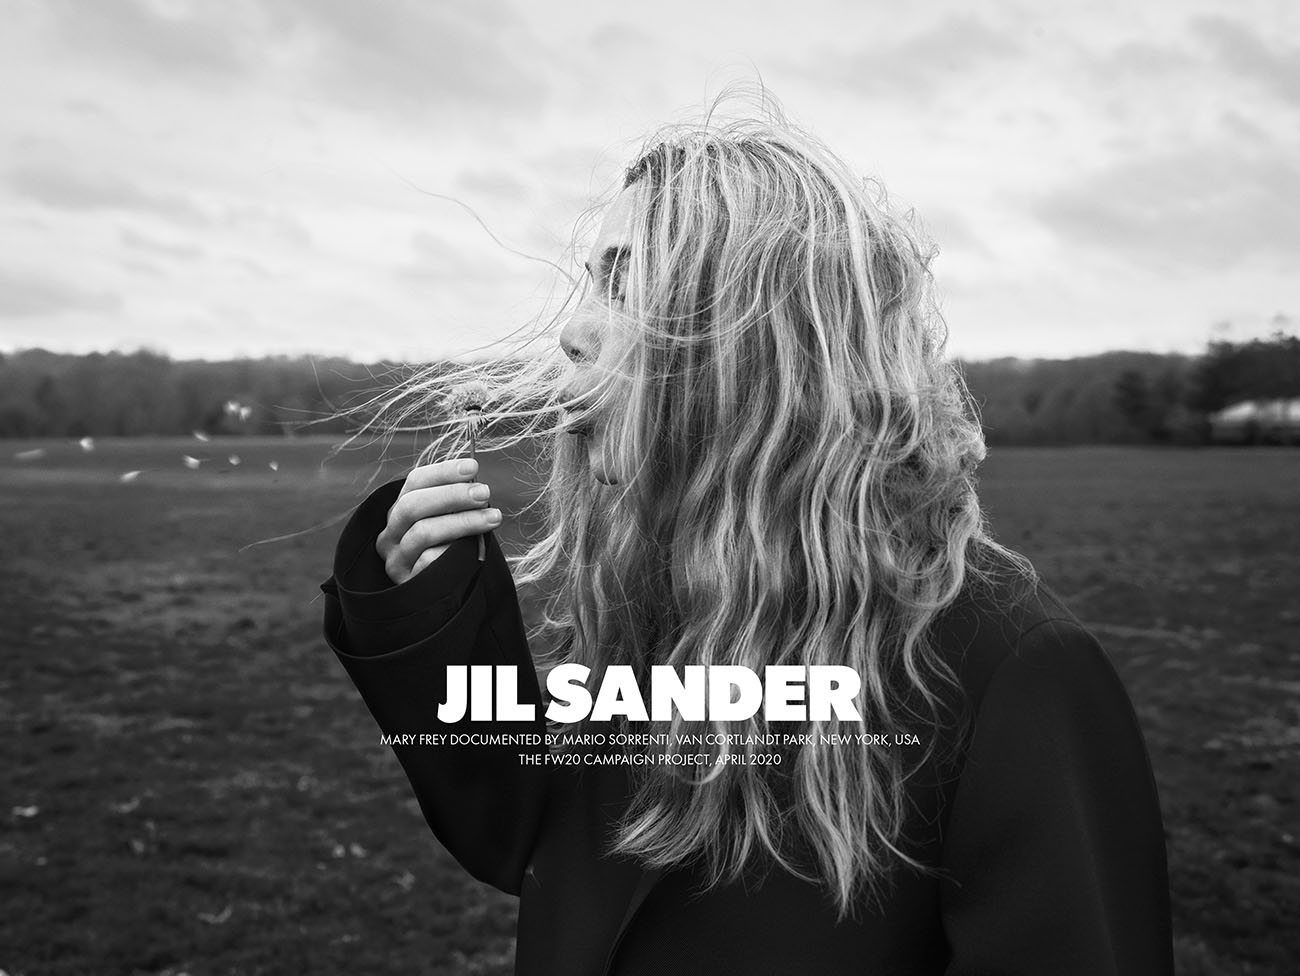 Jil Sander Fall Winter 2020 Campaign